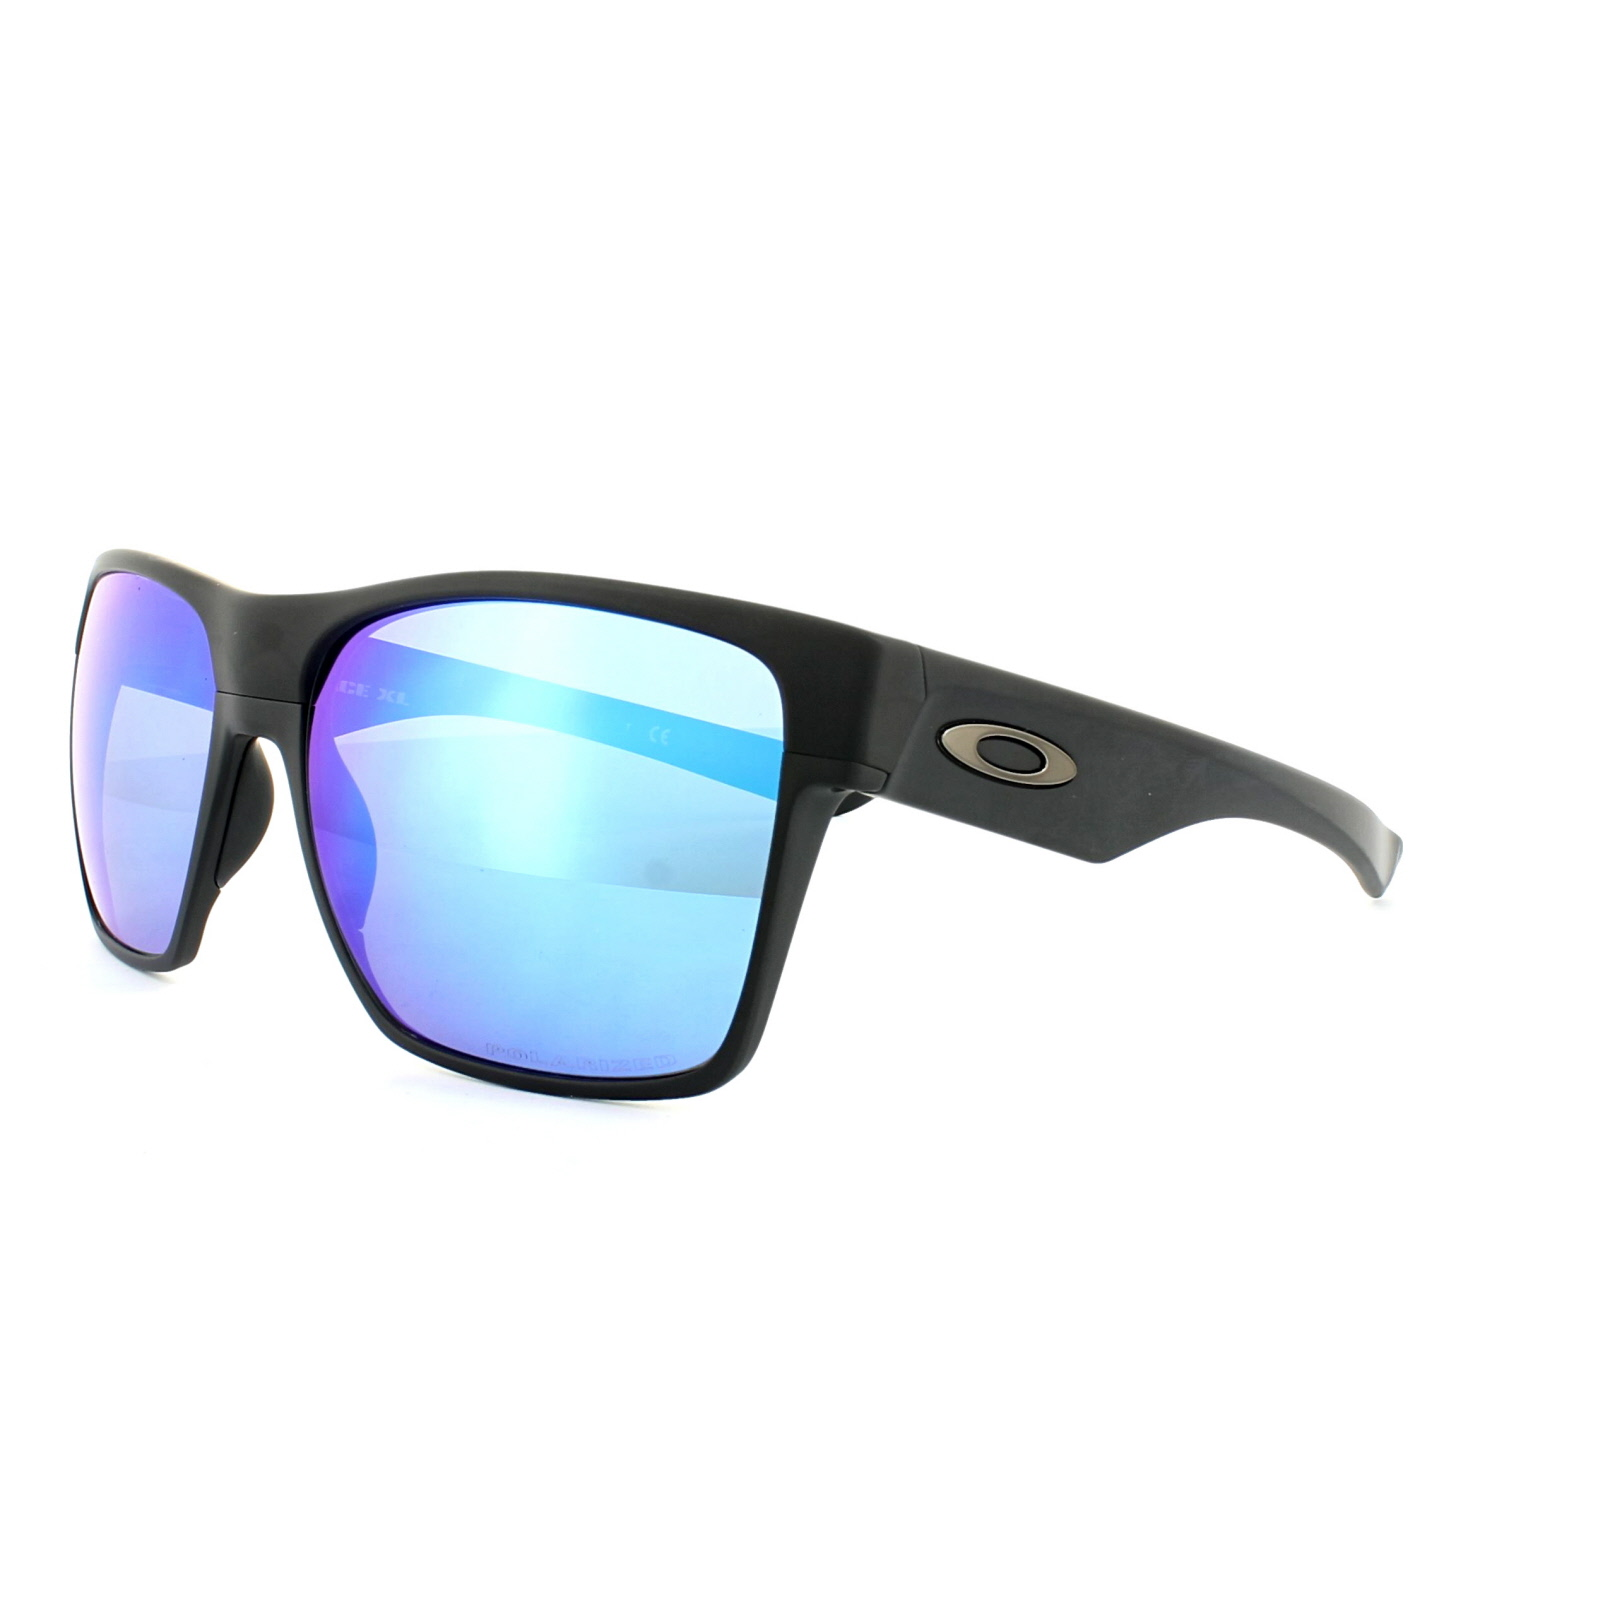 fbac739764e Details about Oakley Sunglasses TwoFace XL OO9350-05 Matt Black Sapphire  Iridium Polarized